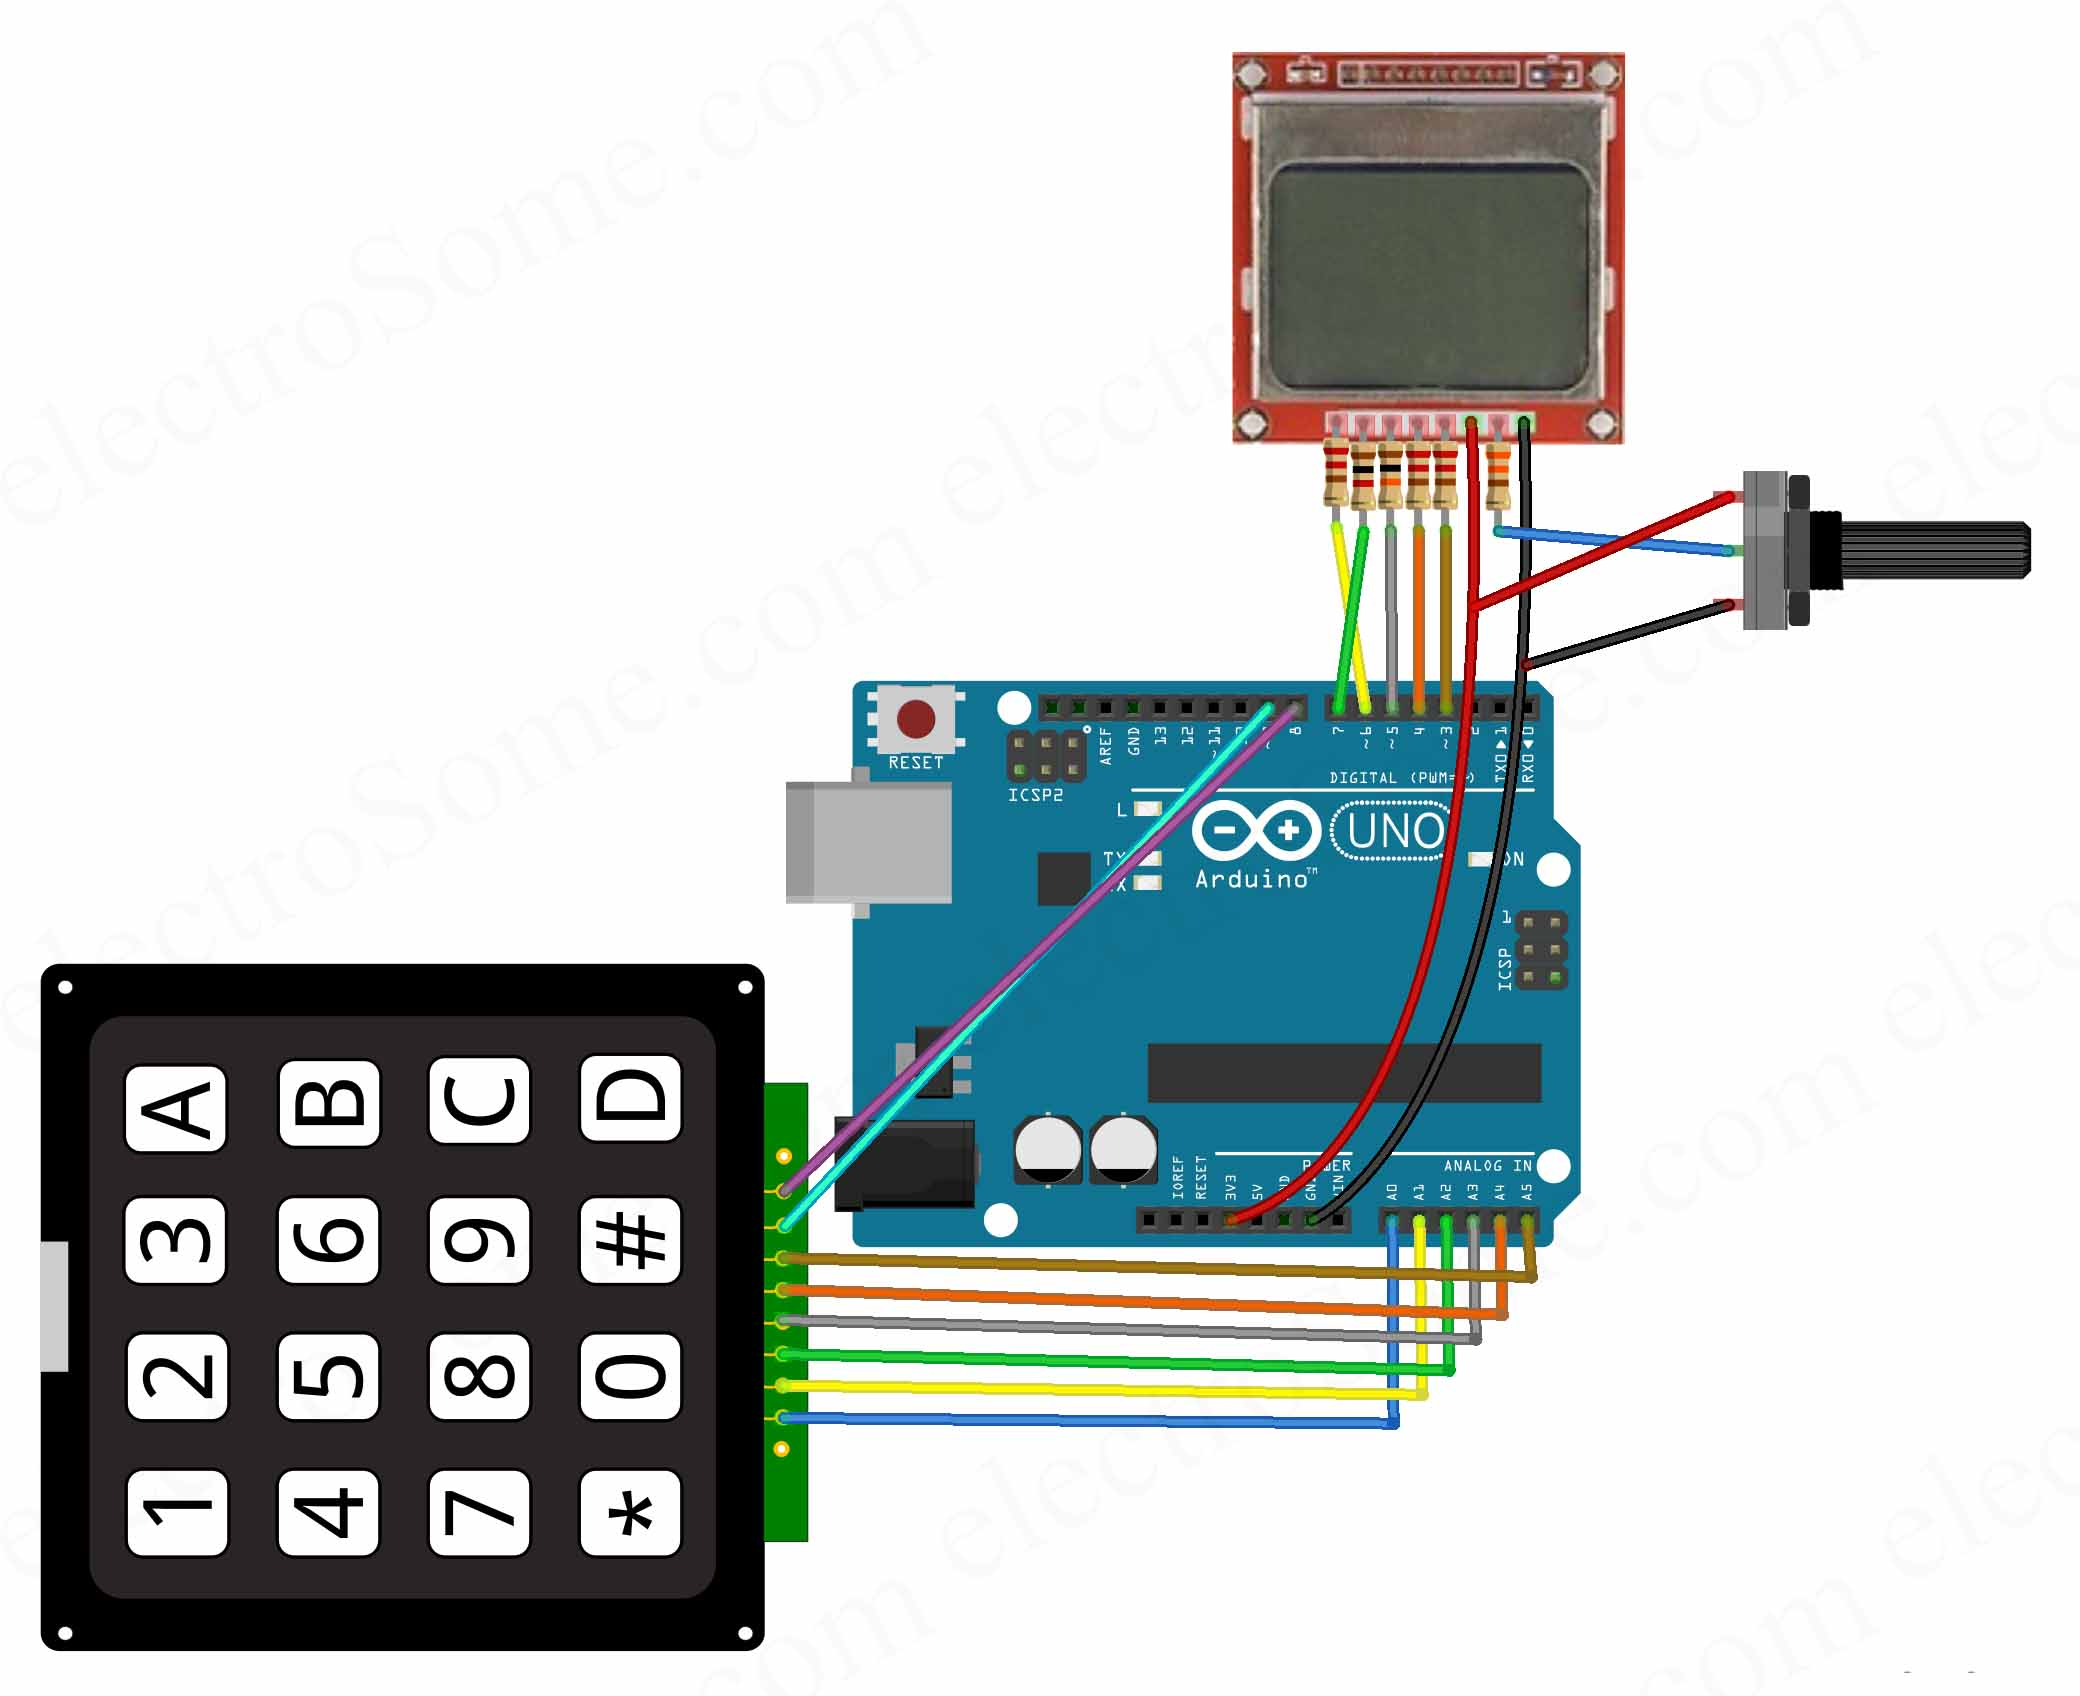 Calculator using arduino uno hobby project circuit diagram